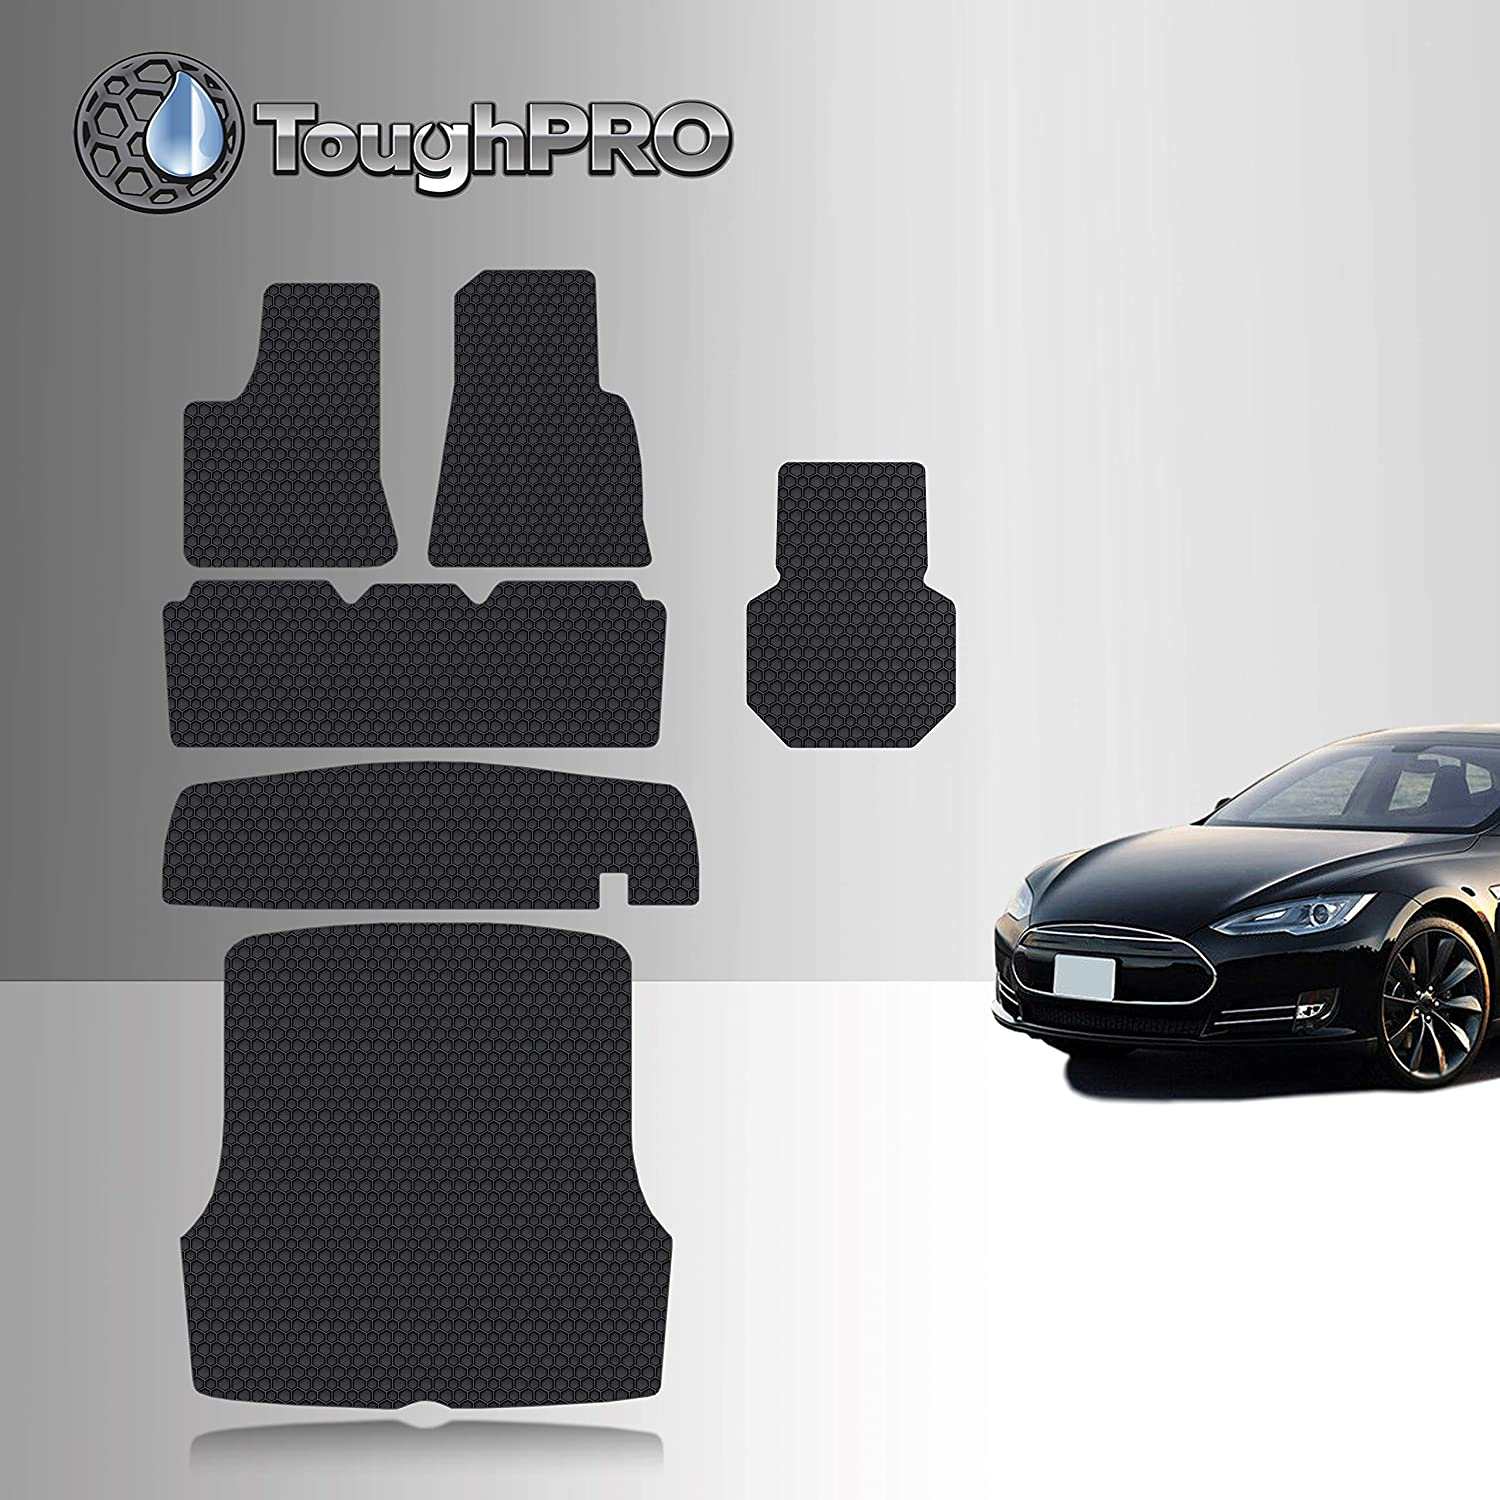 TOUGHPRO Floor Mat Accessories Compatible with Tesla Model S - All Weather - Heavy Duty - (Made in USA) - Black Rubber - 2012, 2013, 2014, 2015 (Complete Set)